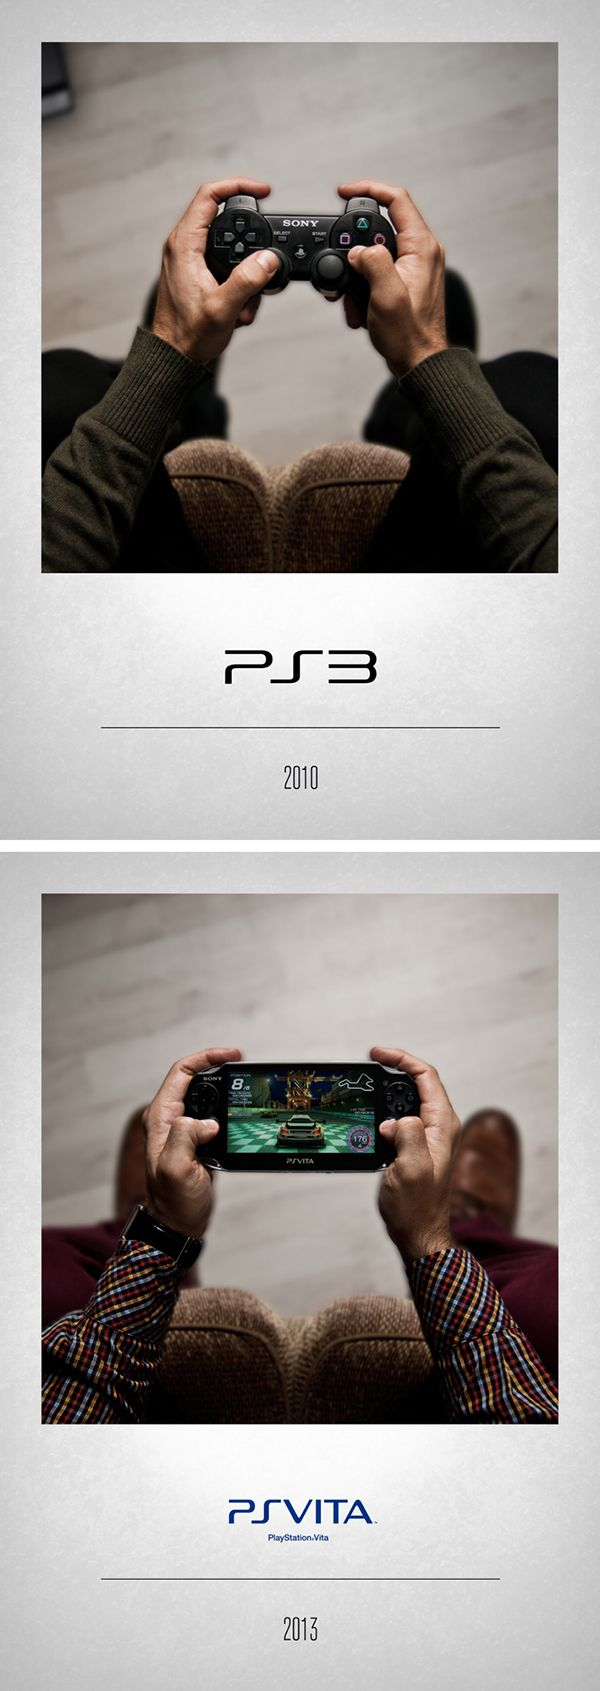 CONTROLLERS by Javier Laspiur, via Behance #Sony PS3 & PS Vita #VideoGame #RetroGame